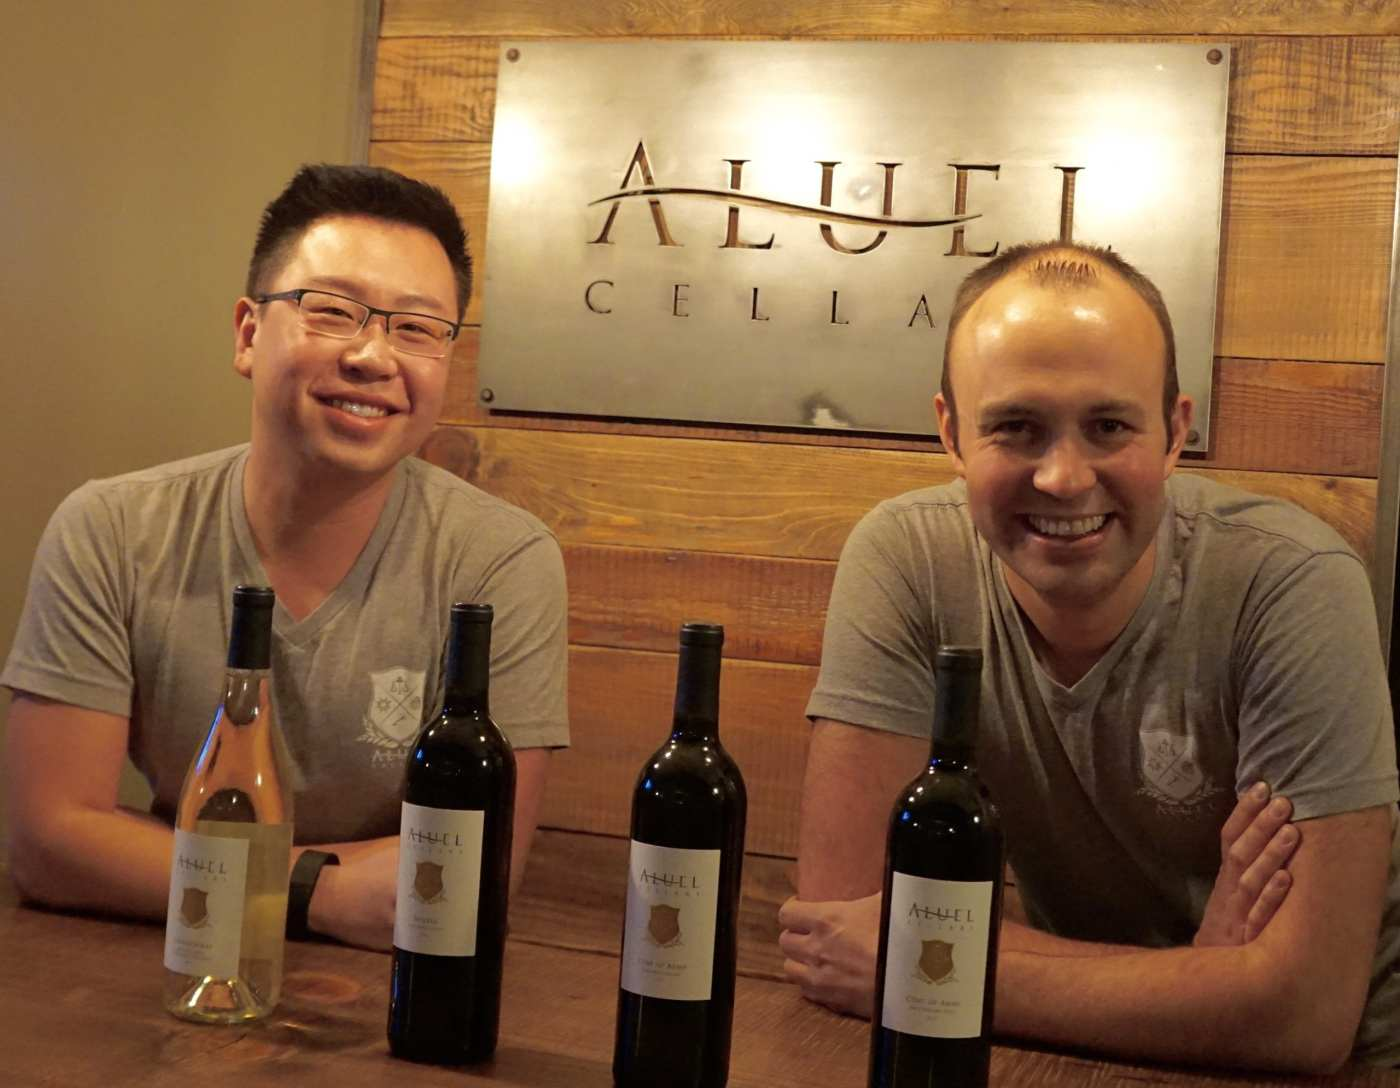 Aluel Cellars brings tasting room experience to Capitol Hill